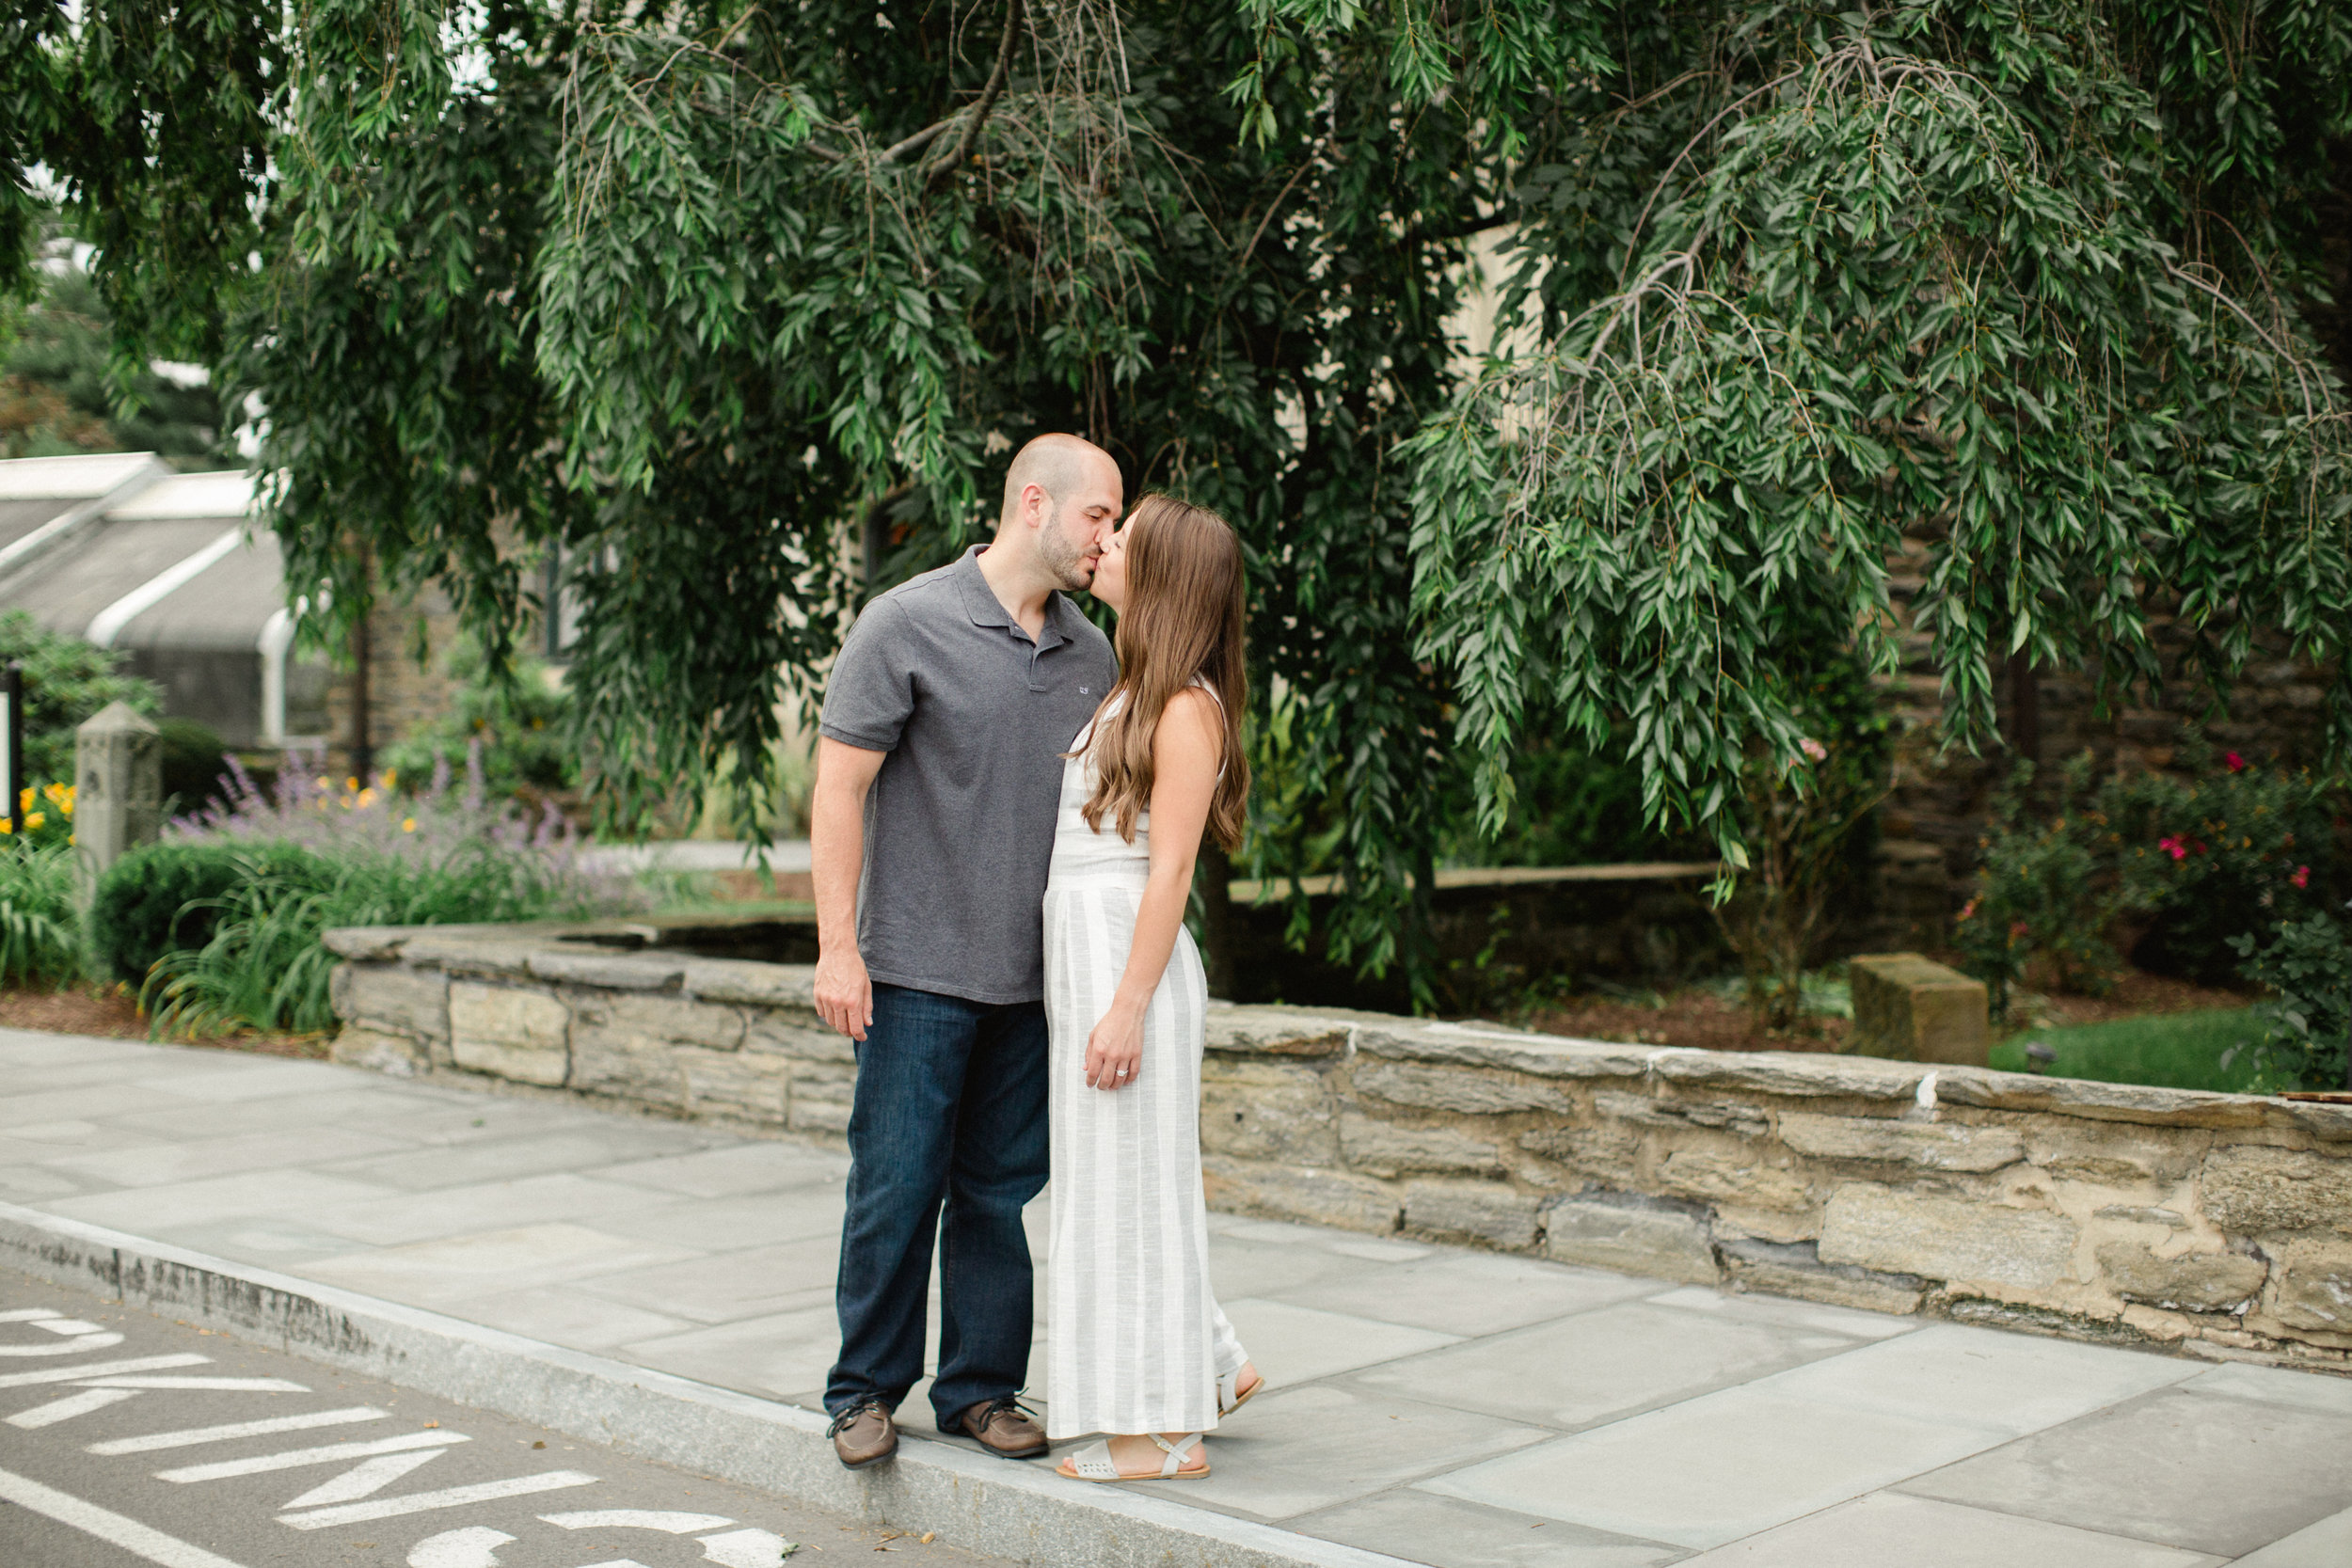 University of Scranton Engagement Session Photos_JDP-51.jpg